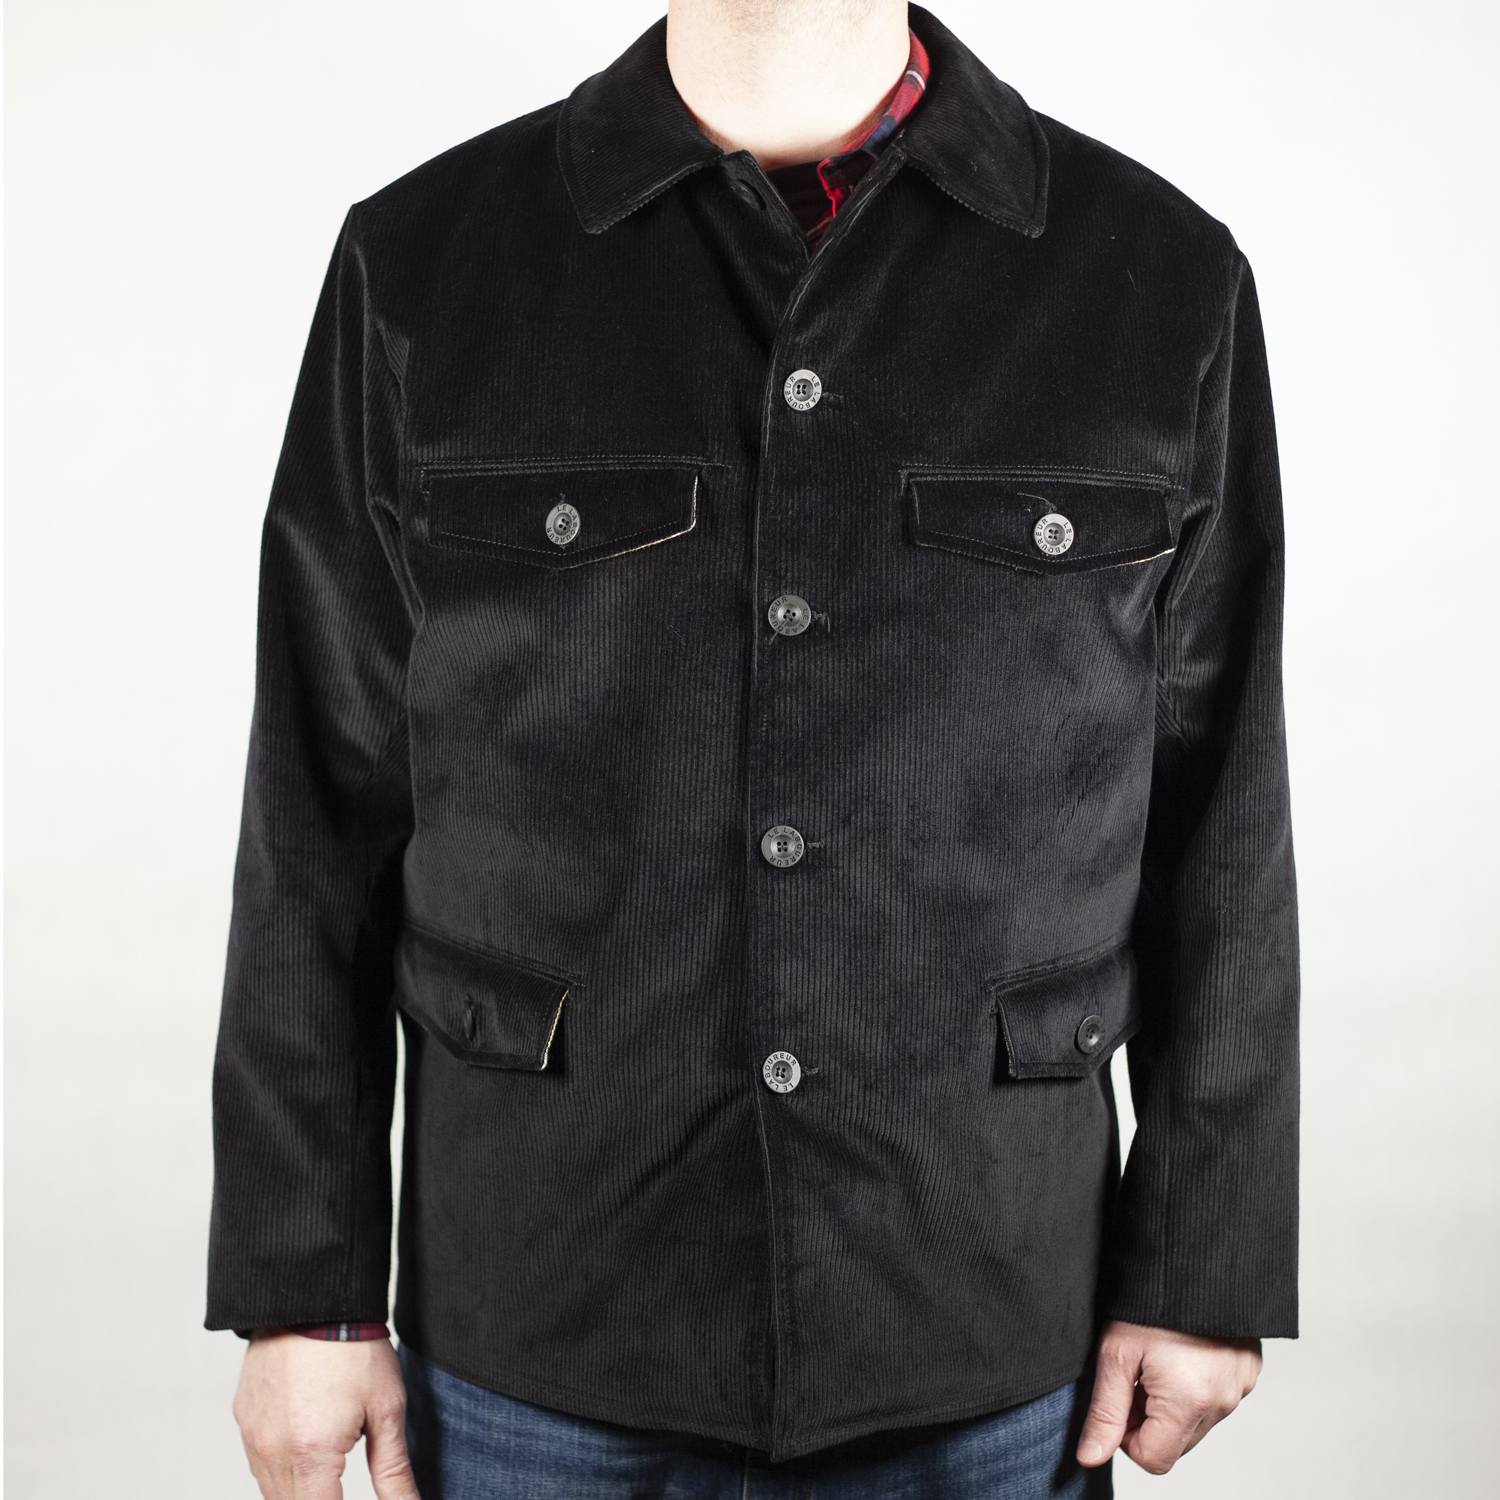 Original Craftsman's Jacket